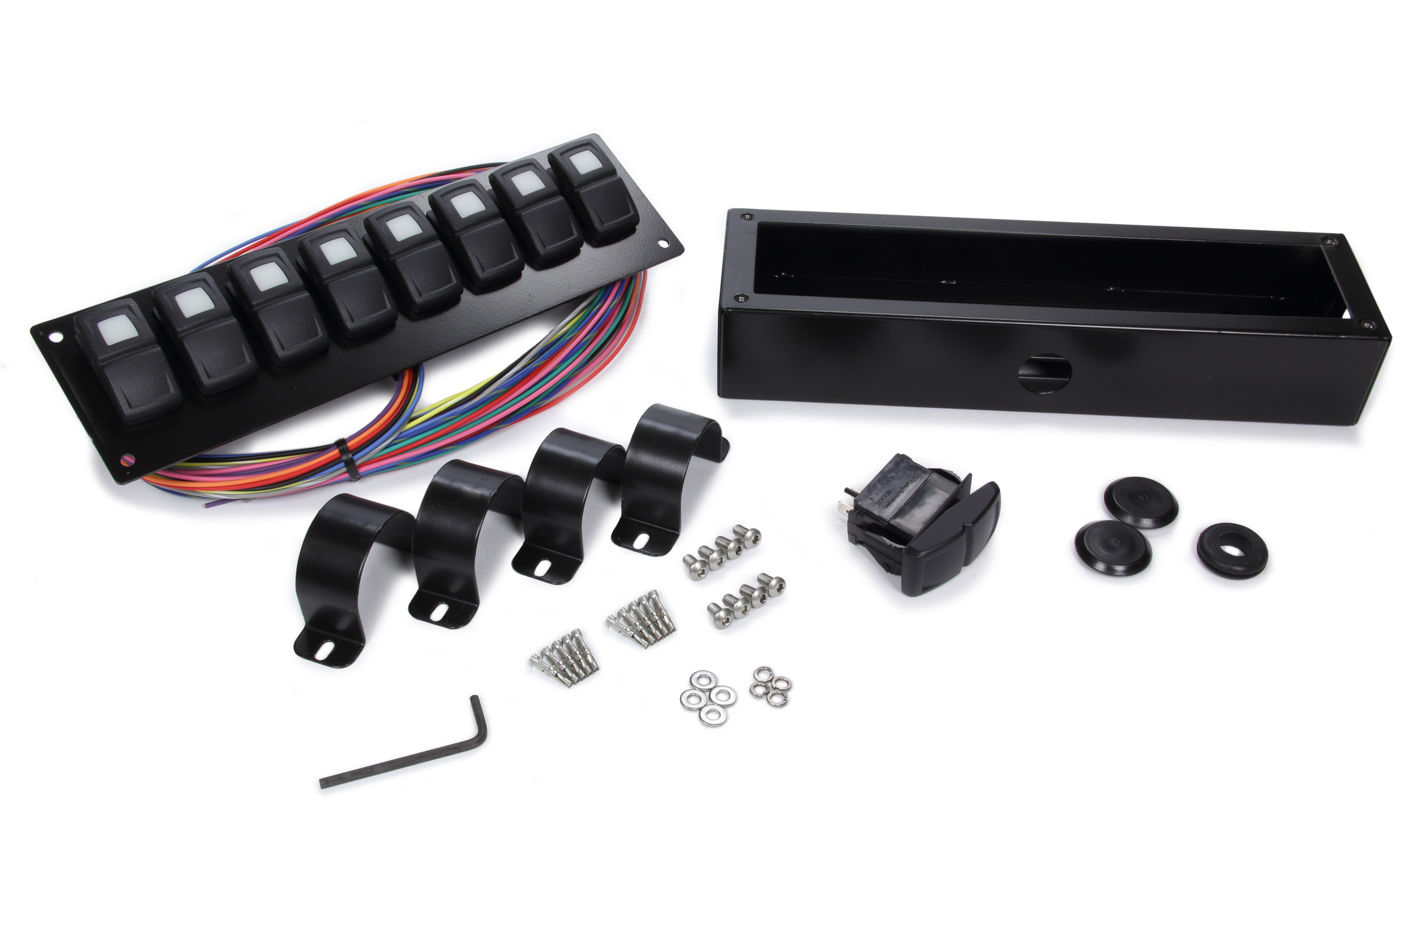 Painless Wiring 58102 Switch Panel, Track Rocker, 1-5/8 or 1-3/4 In Roll Bar Mount, 8 Rockers, Installation Hardware / Wiring Harness Included, Indicator Lights, Black, Painless Track Rocker System, Kit